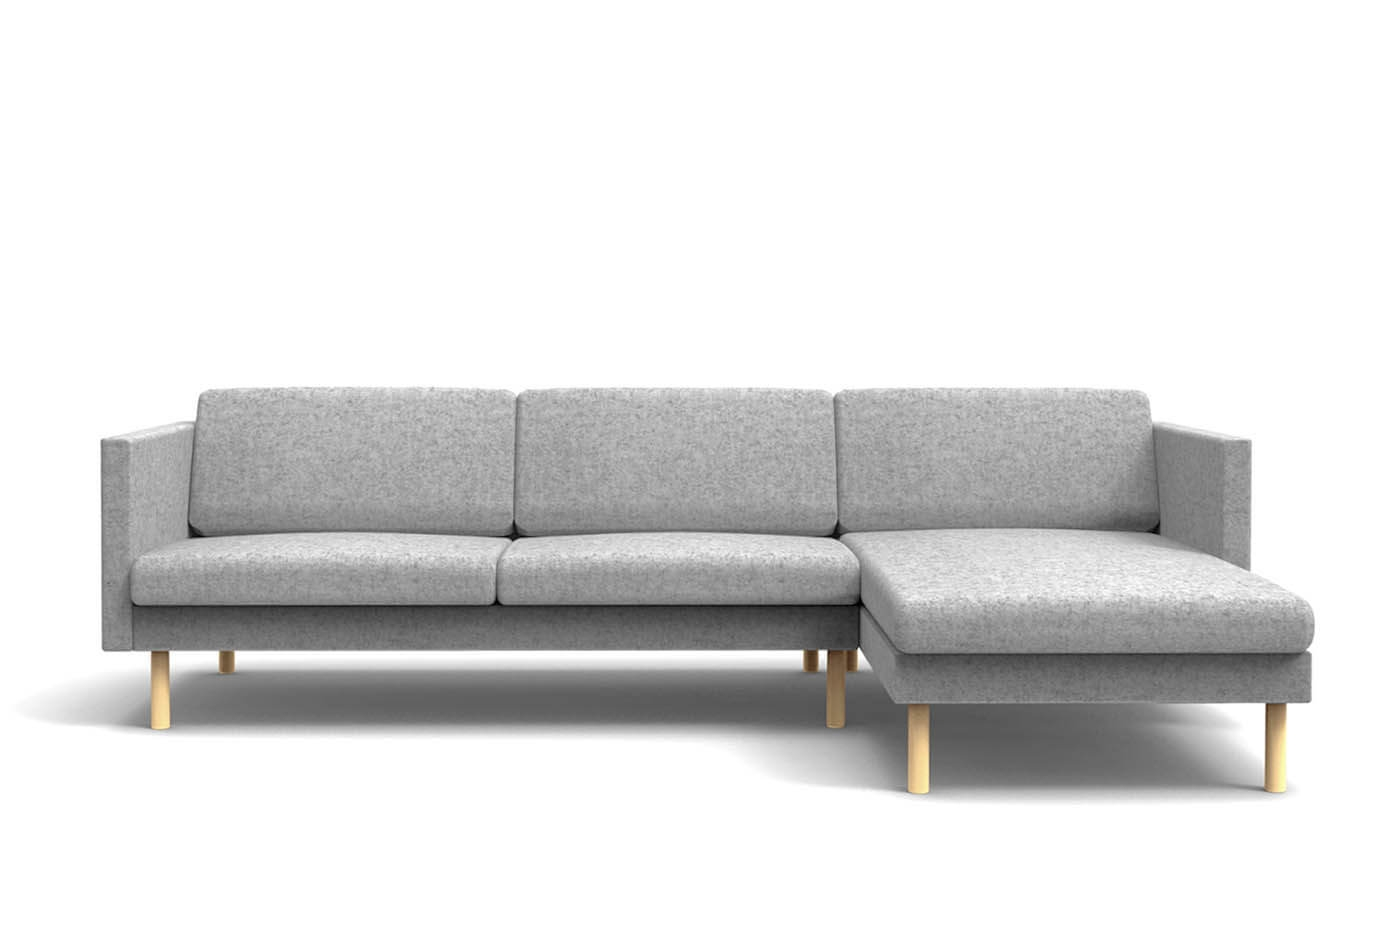 Sofa Chaise Lounges Throughout 2018 Leaf Sofa Chaise Lounge Left – Oot Oot Studio (View 11 of 15)